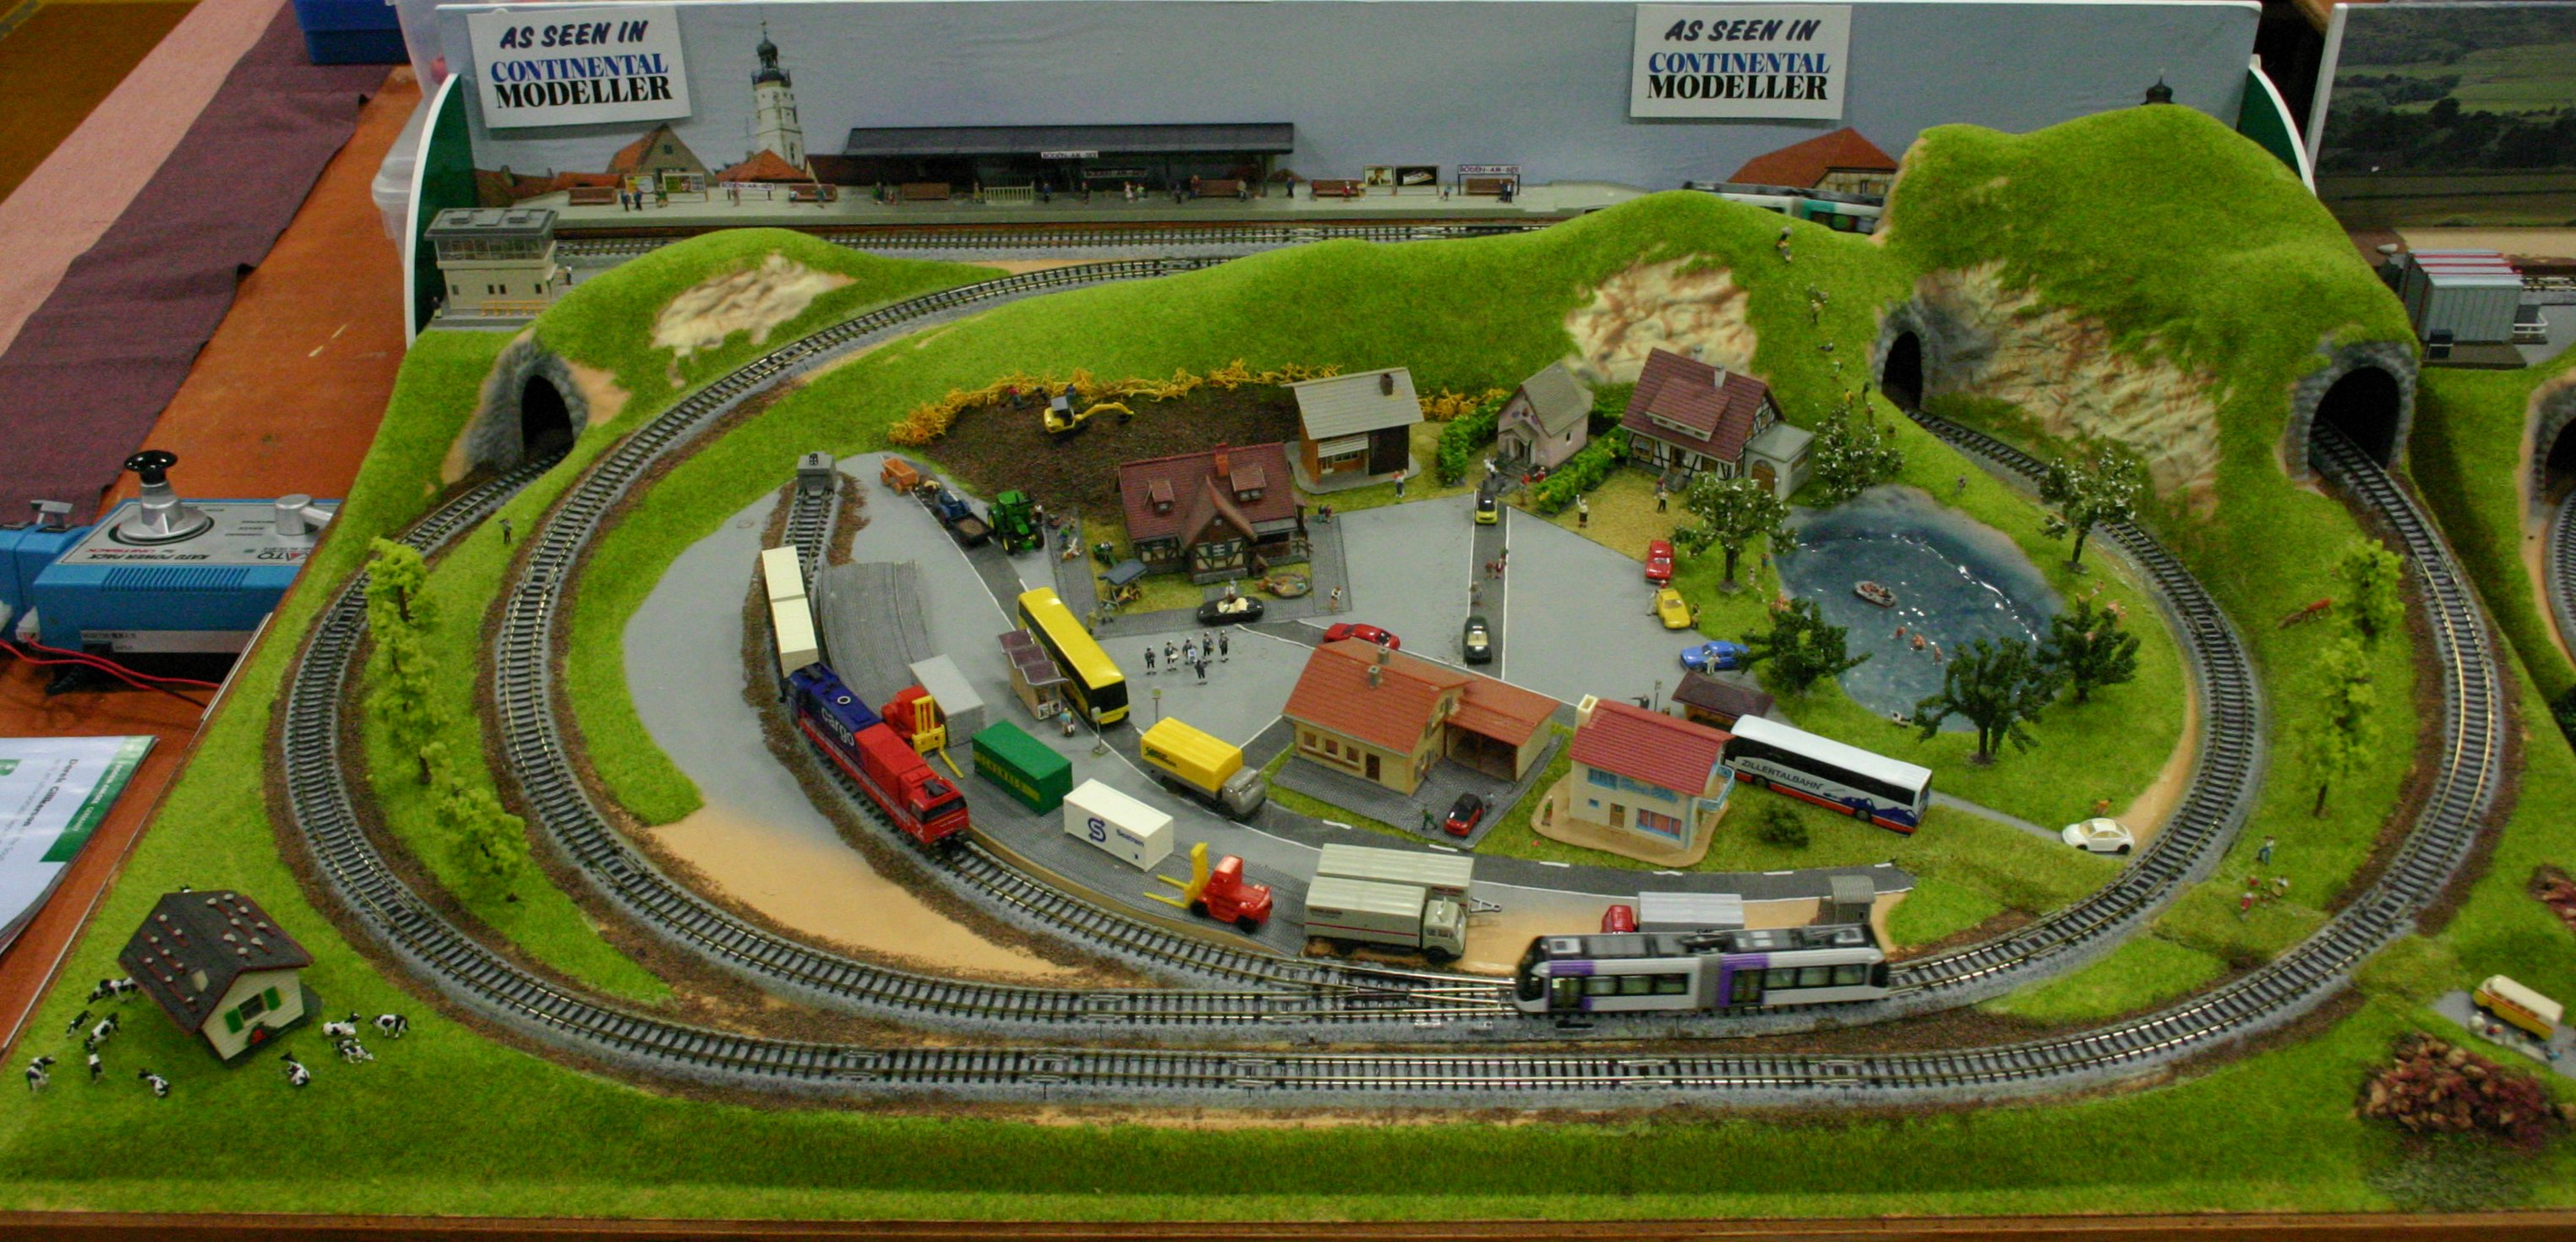 2013 Solent Model Railway Group Eurotrack Model